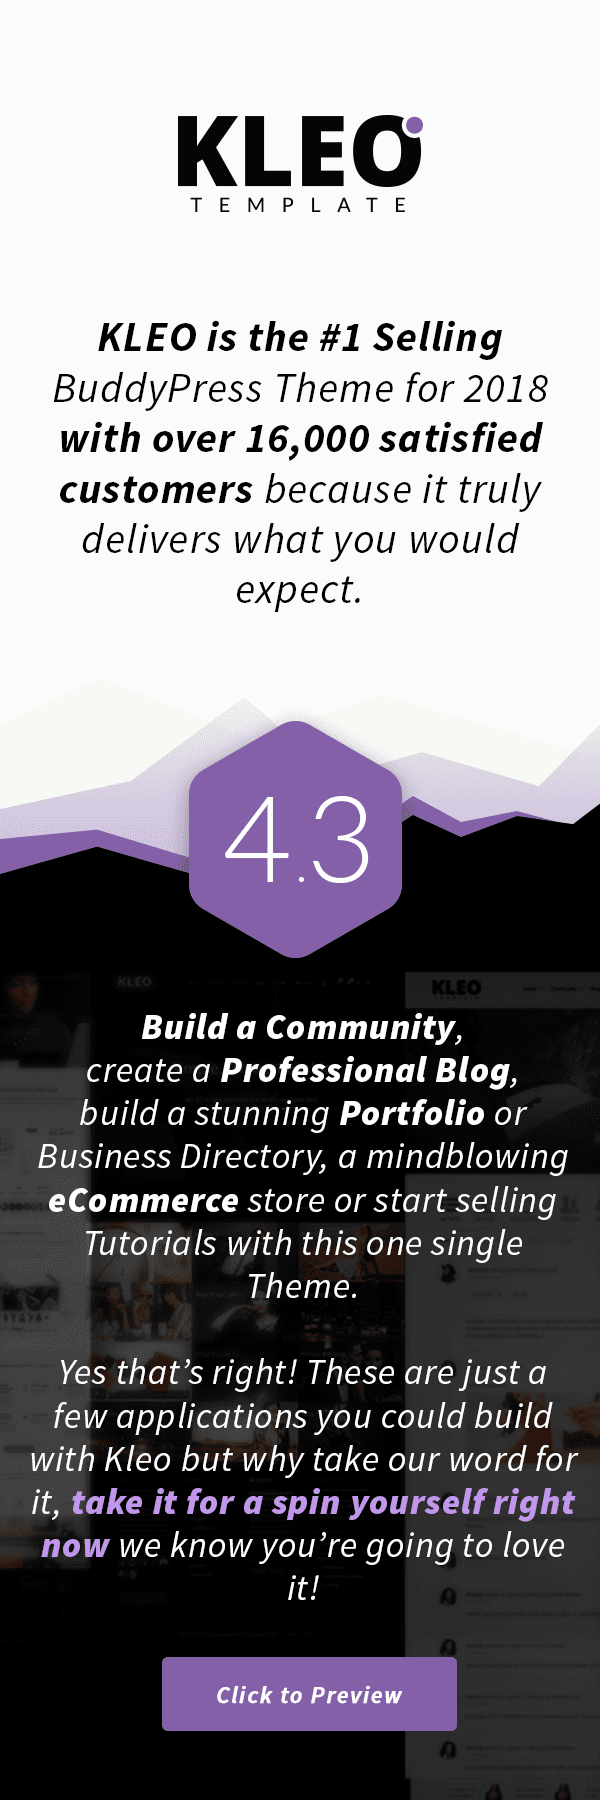 KLEO - Pro Community Focused, Multi-Purpose BuddyPress Theme - 1